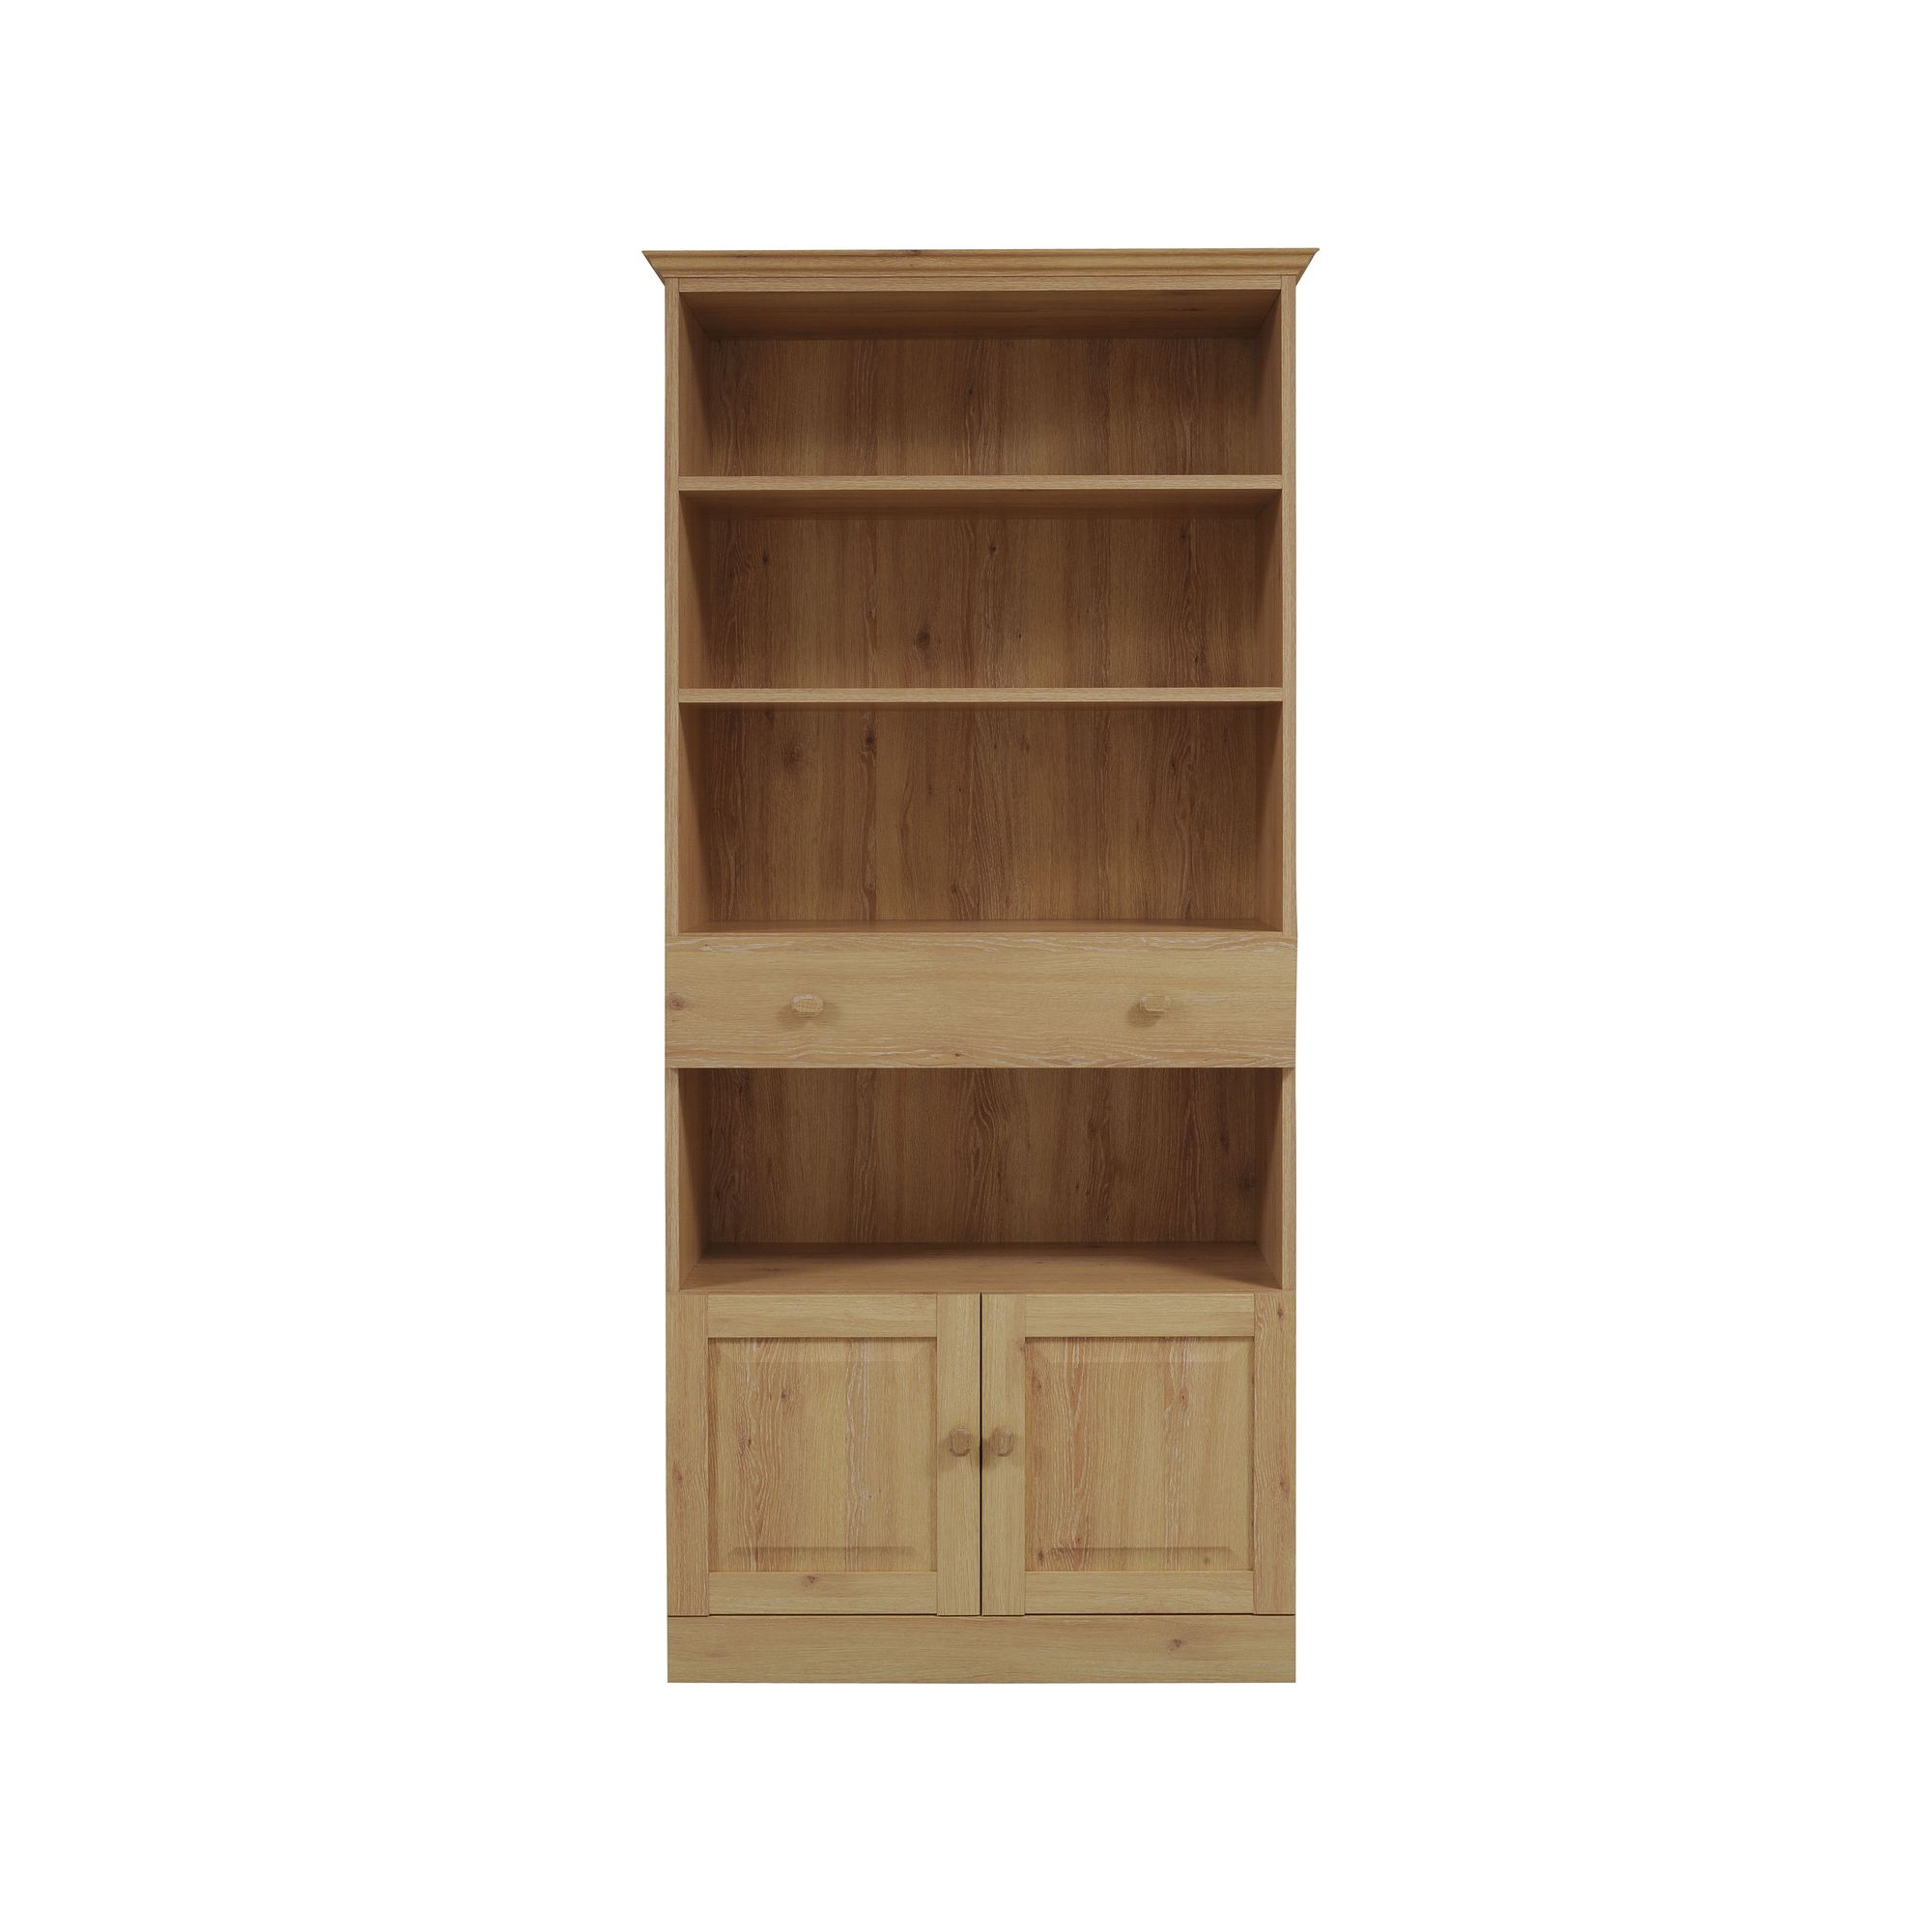 Caxton Driftwood Tall Wide Bookcase in Limed Oak at Tesco Direct